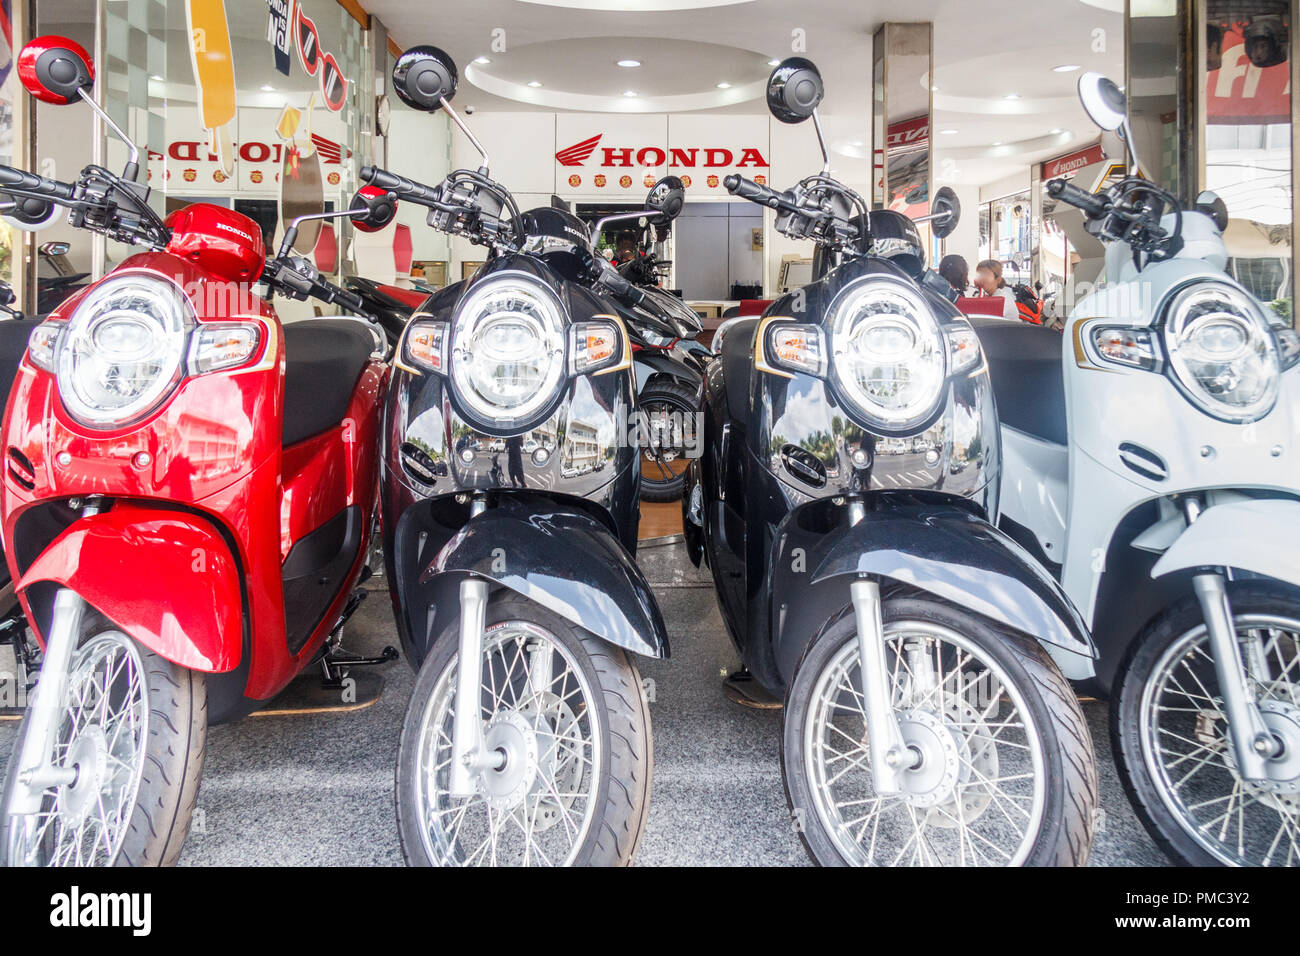 Japanese Motorbikes Stock Photos Images 1970 Honda 75cc Motorcycle Phuket Town Thailand 6th August 2018 In Showroom The Brand